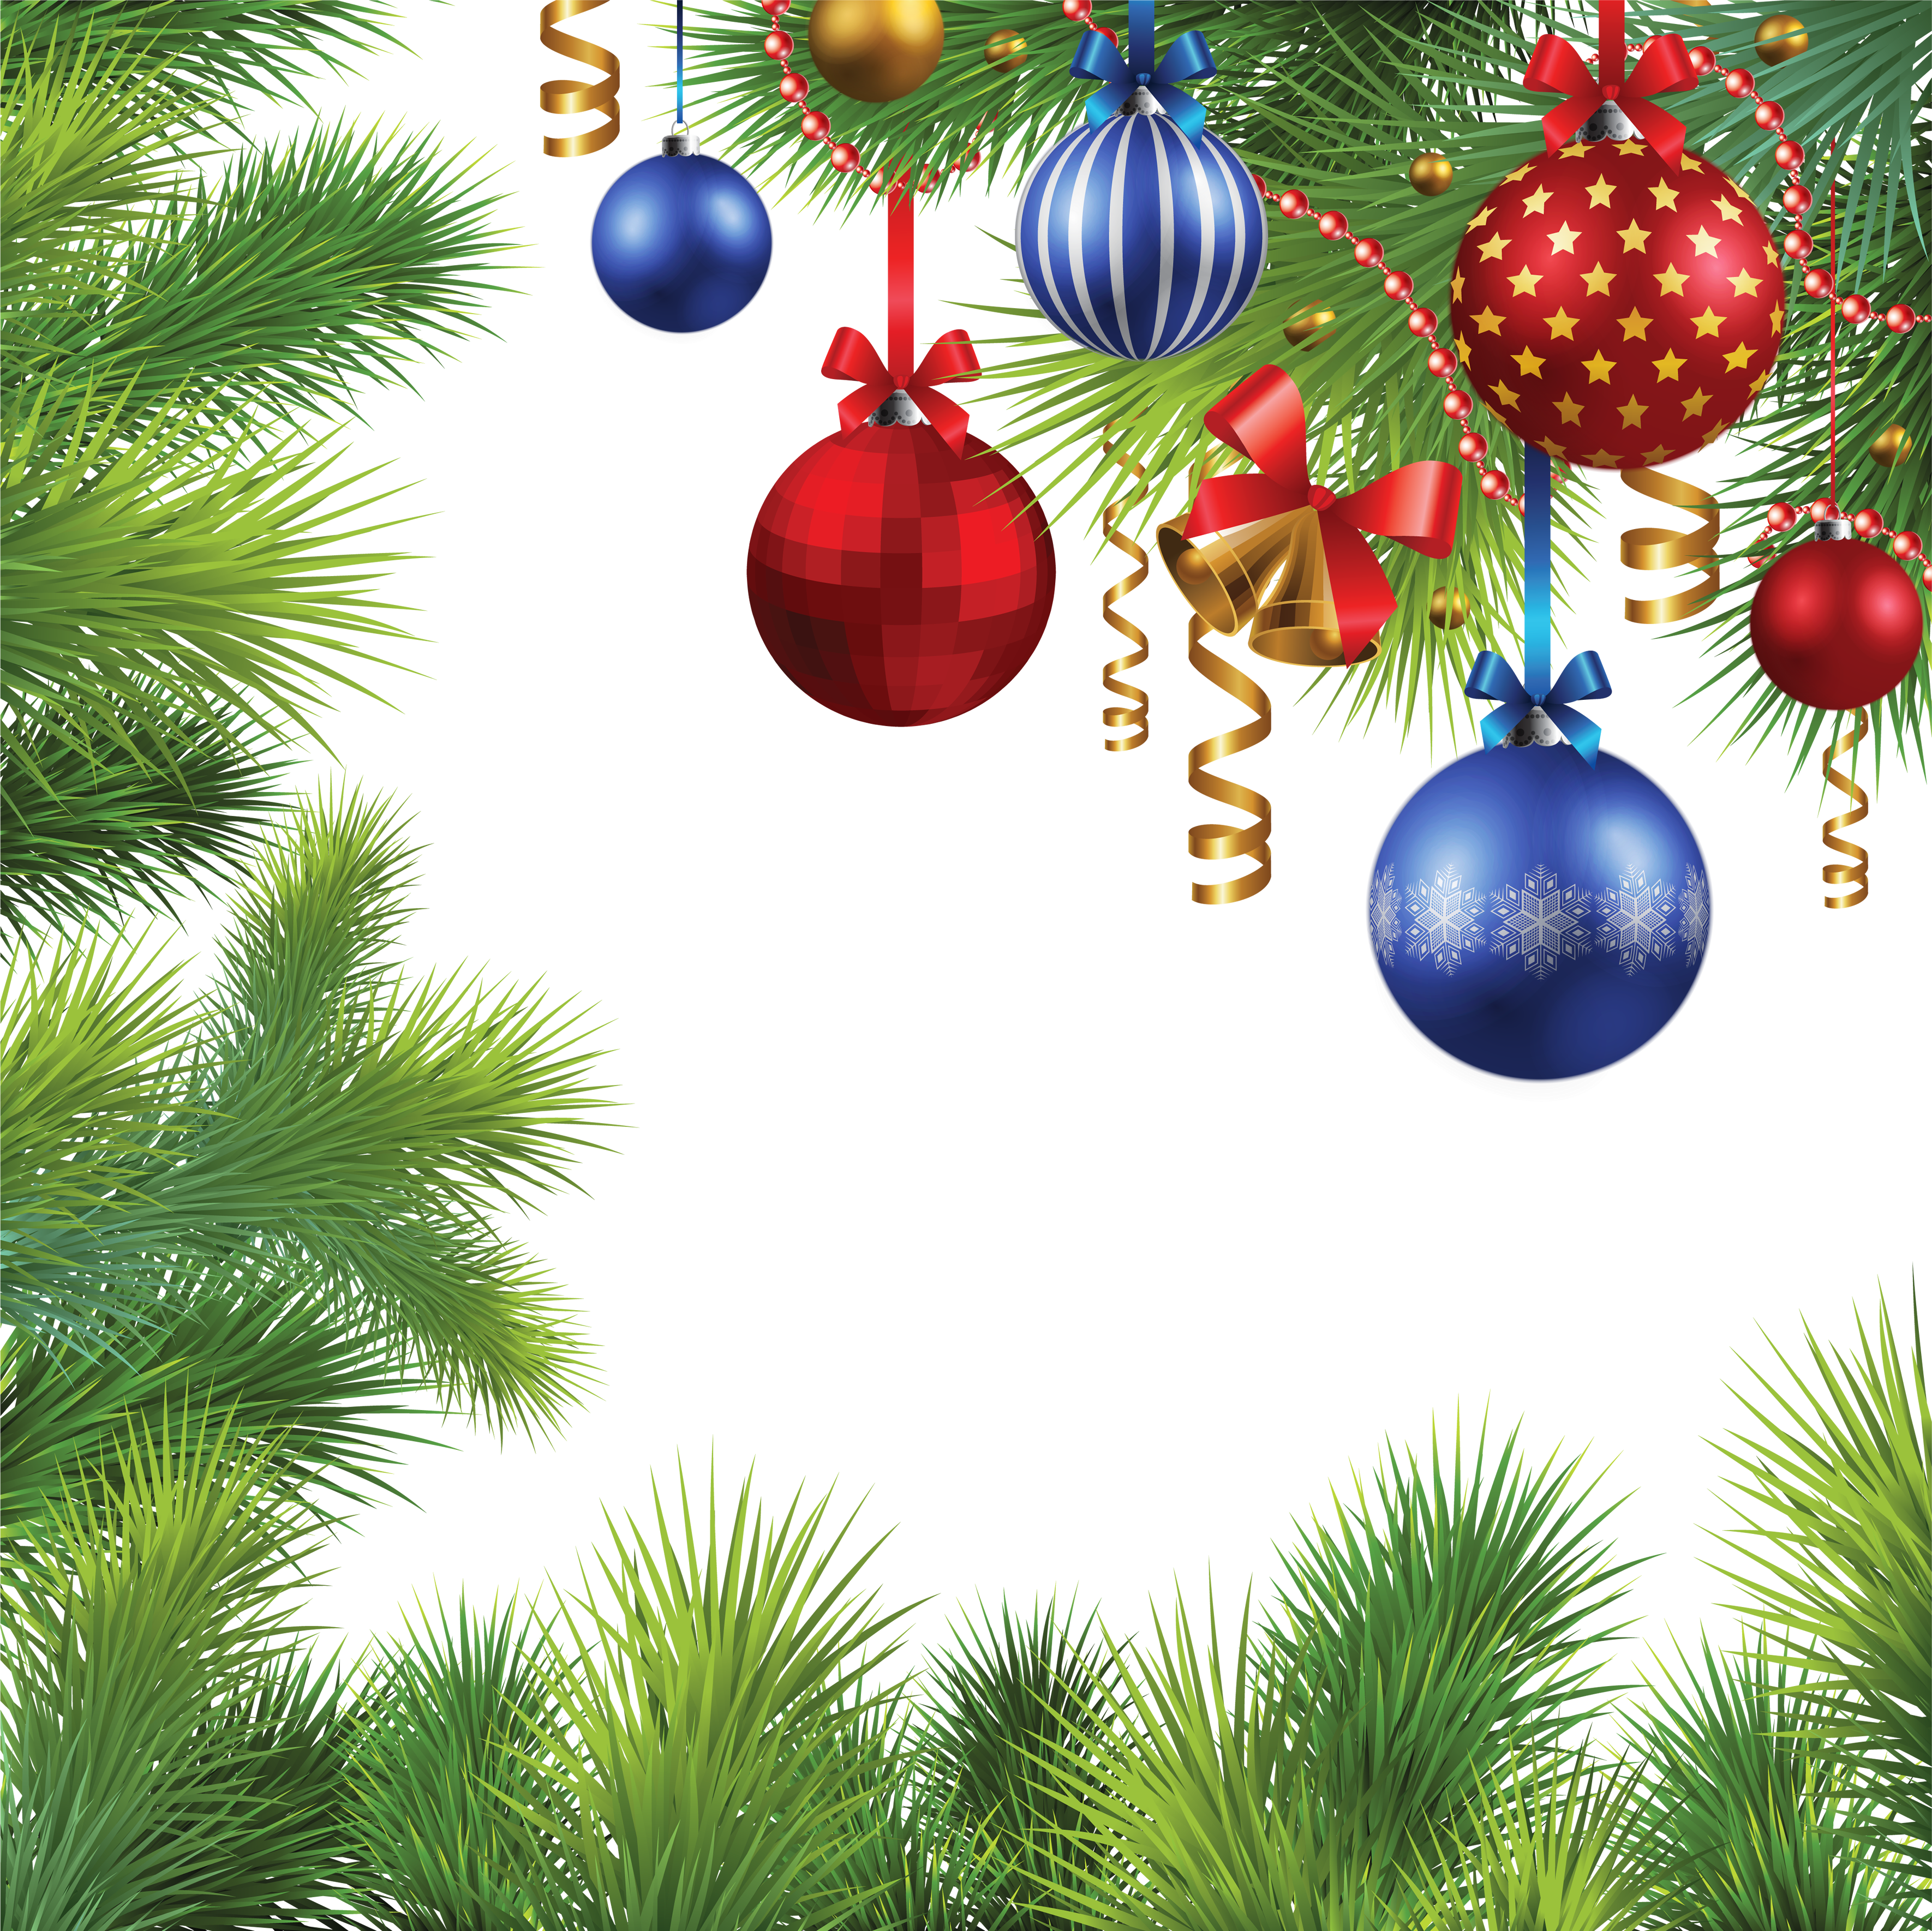 Png christmas images. Balls tree frame free